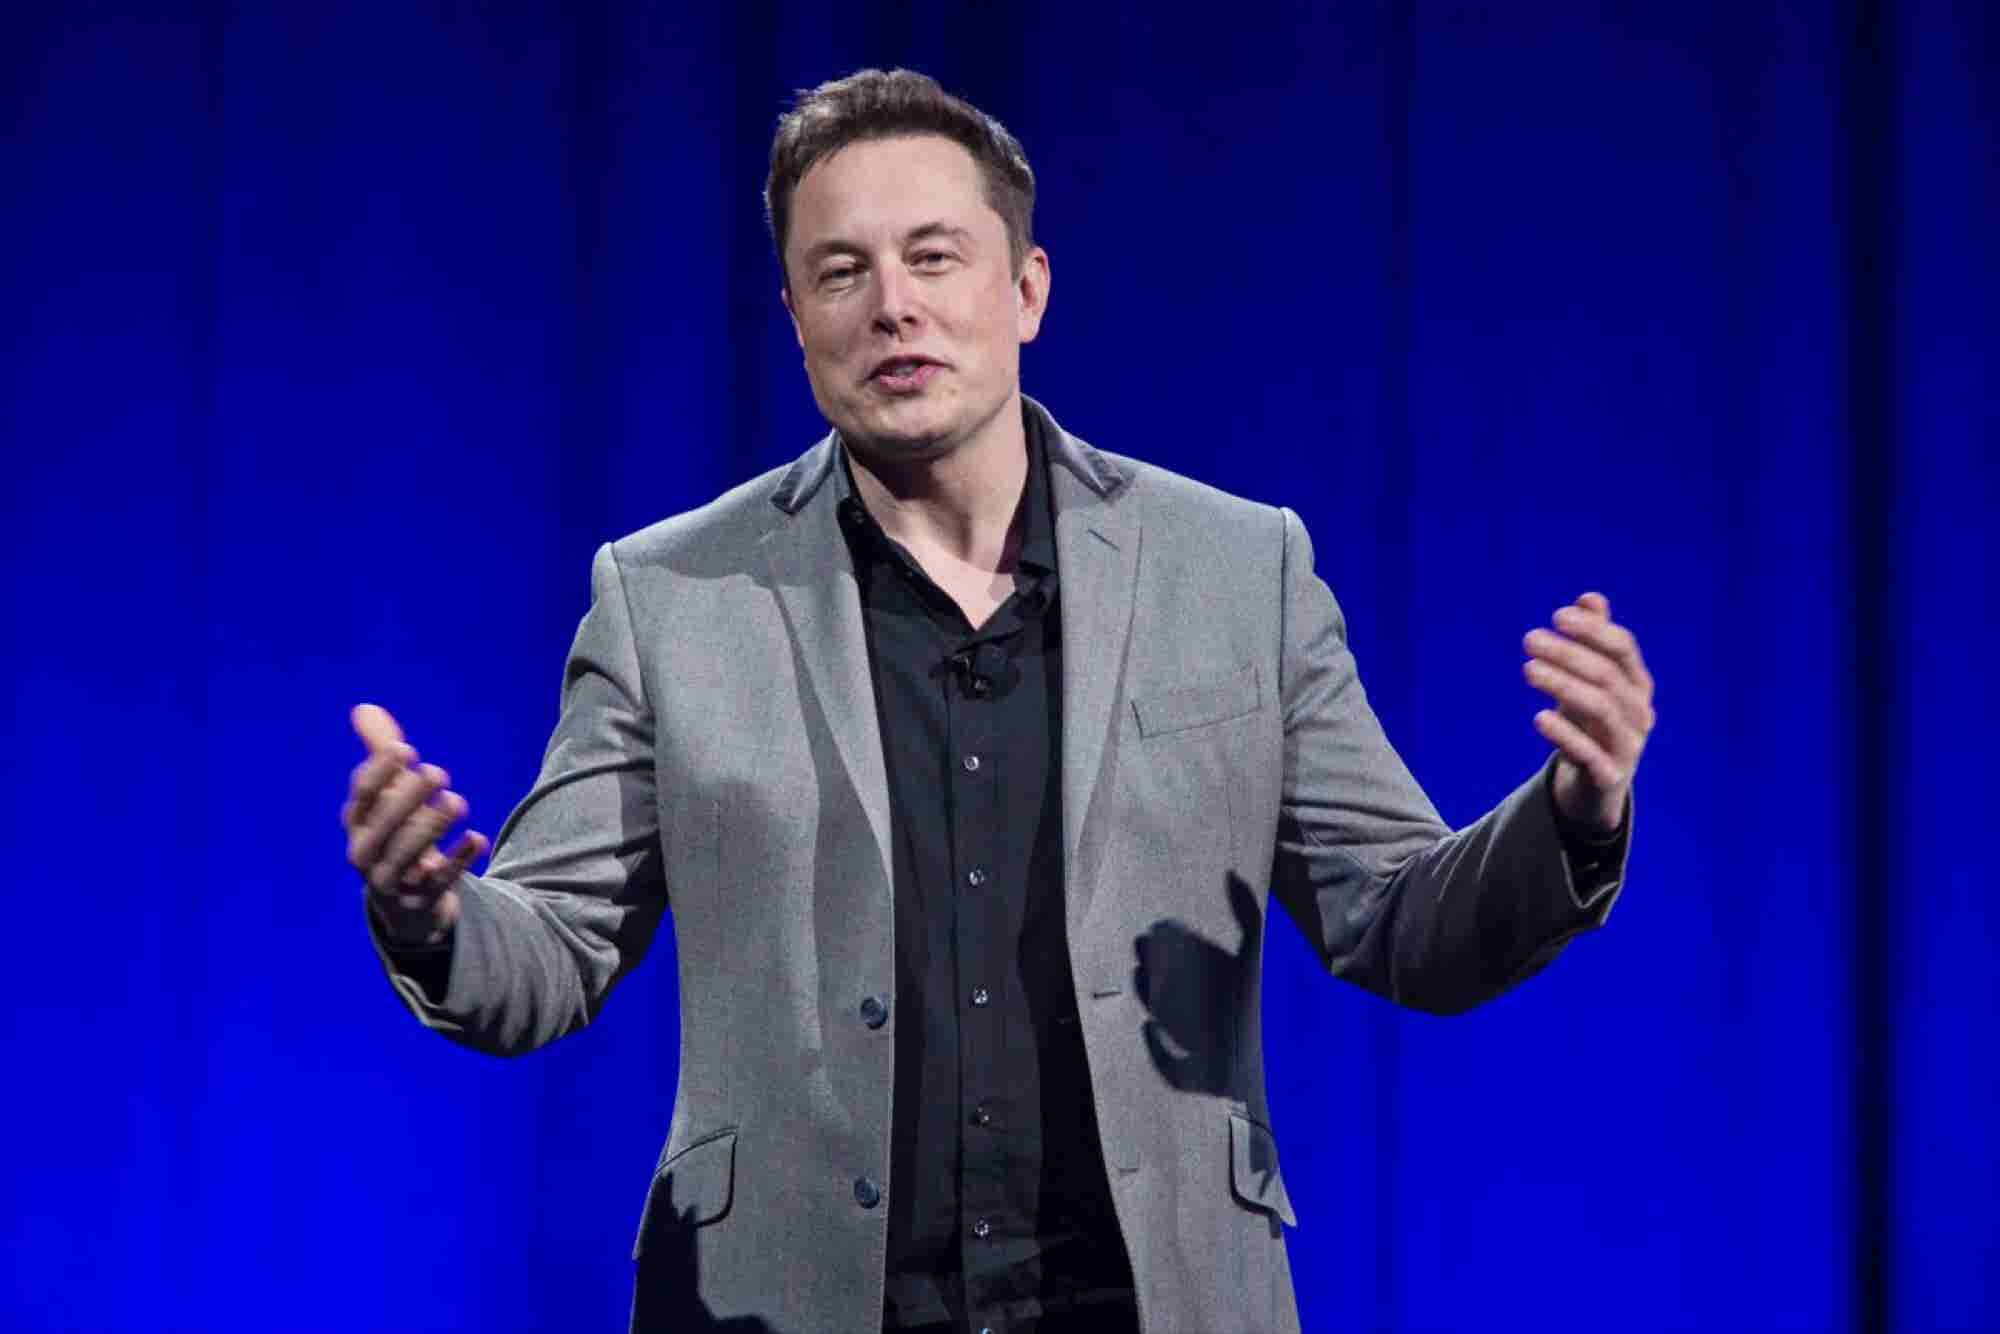 From Monty Python to Mario Kart, Elon Musk Proves His Nerdiness With These 17 References and Easter Eggs